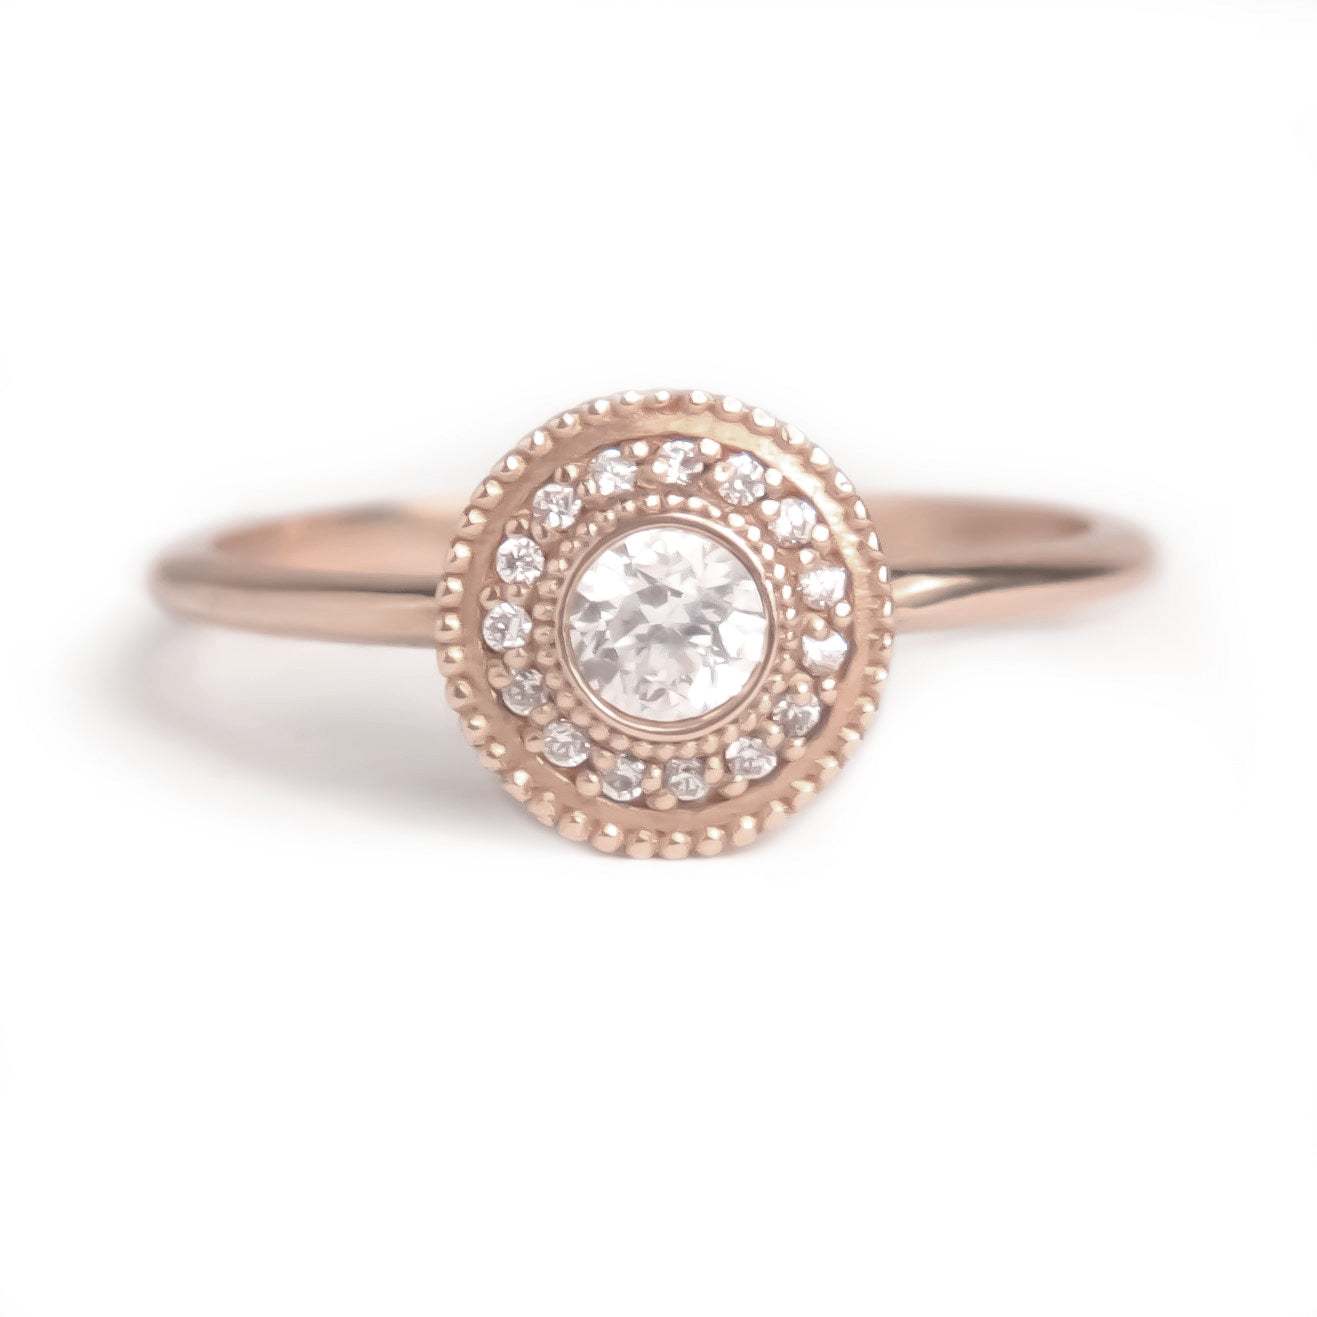 Leila Diamond Ring - Manari Design